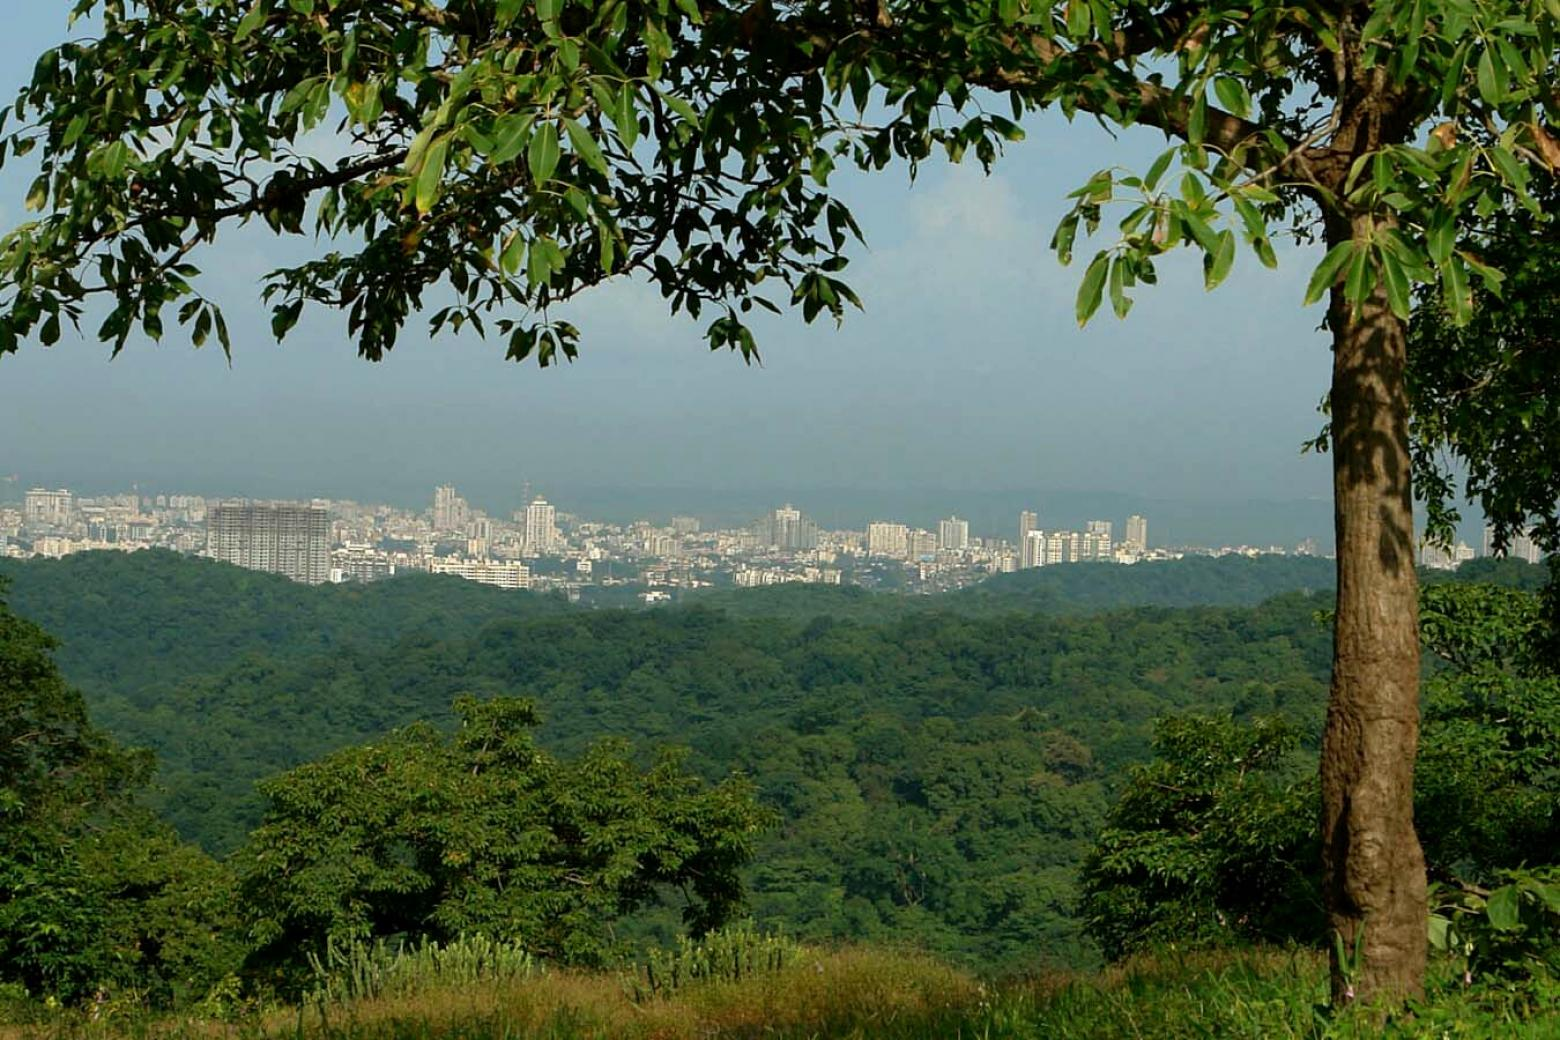 Mumbai, seen from Sanjay Gandhi National Park © Sunjoy Monga